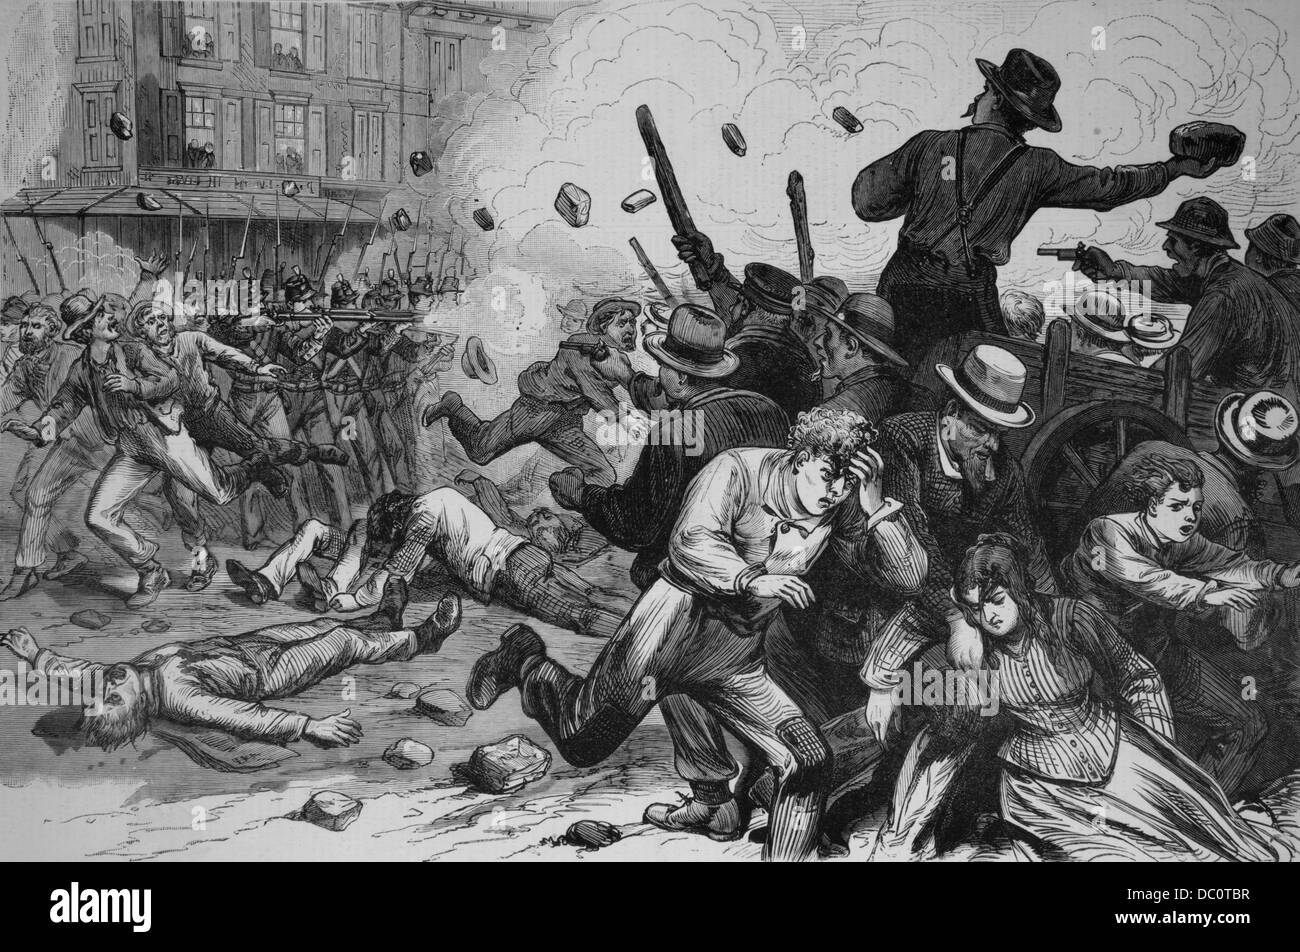 1800s 1870s GREAT RAILROAD STRIKE 1877 MARYLAND NATIONAL GUARD TROOPS FIRING ON MOB STRIKING WORKERS BALTIMORE & - Stock Image